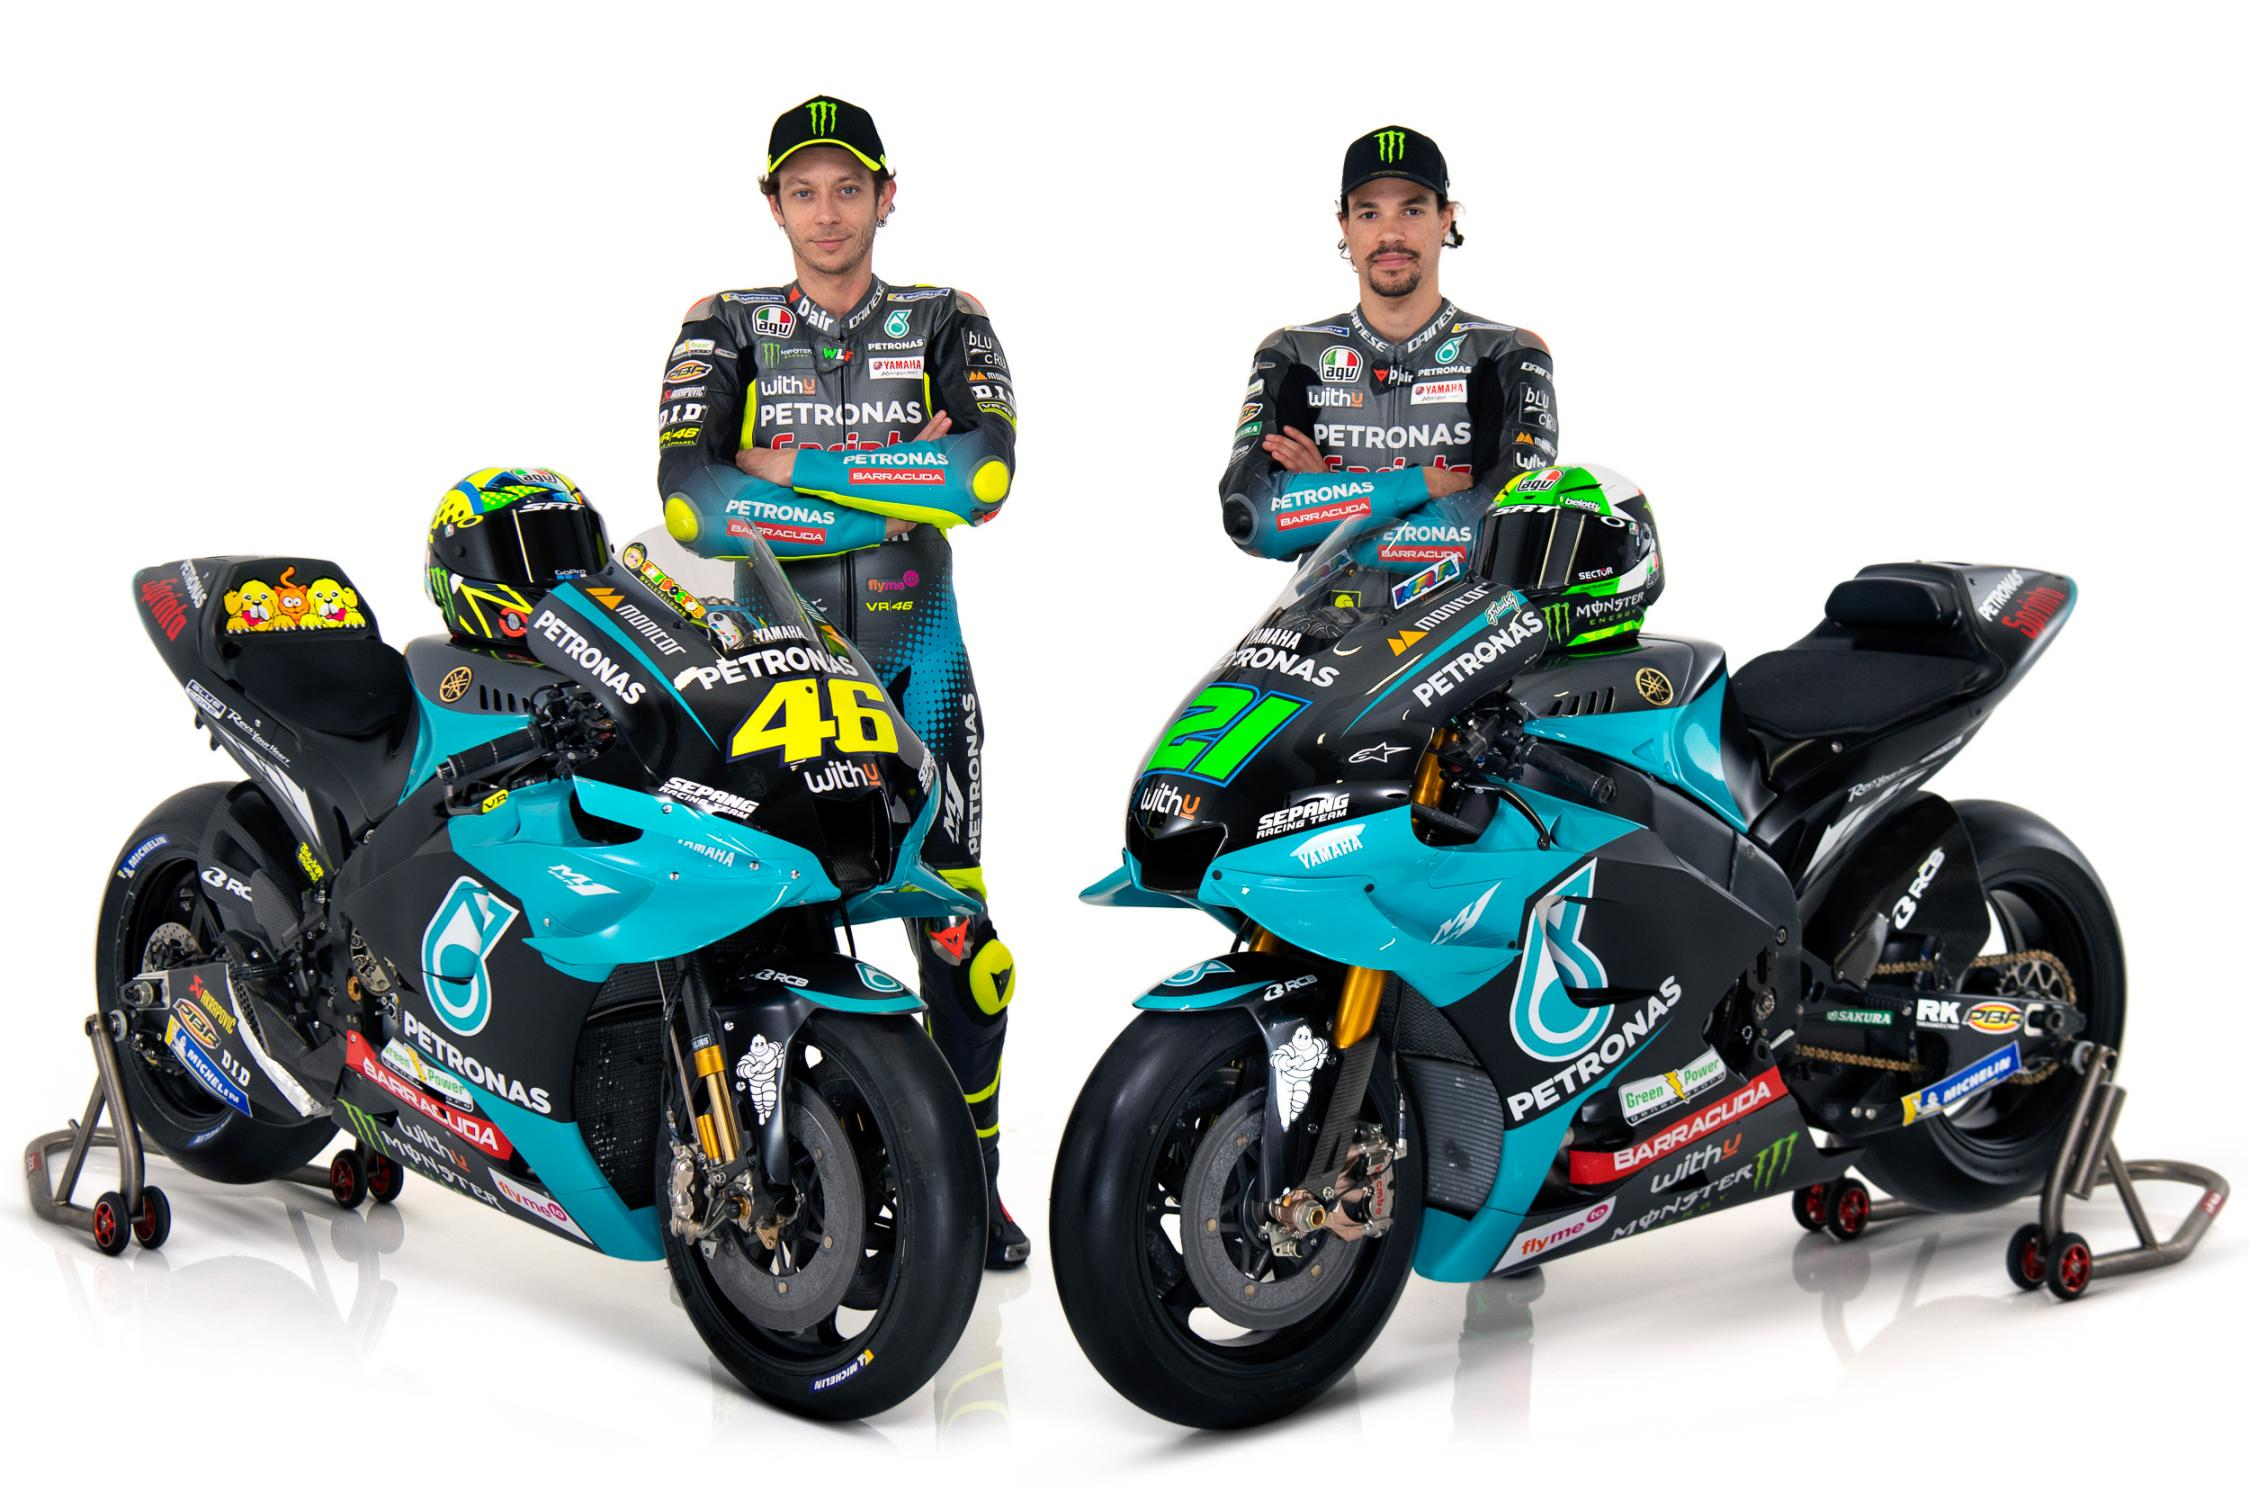 Petronas Yamaha Sepang Racing Team shows off 2021 colours